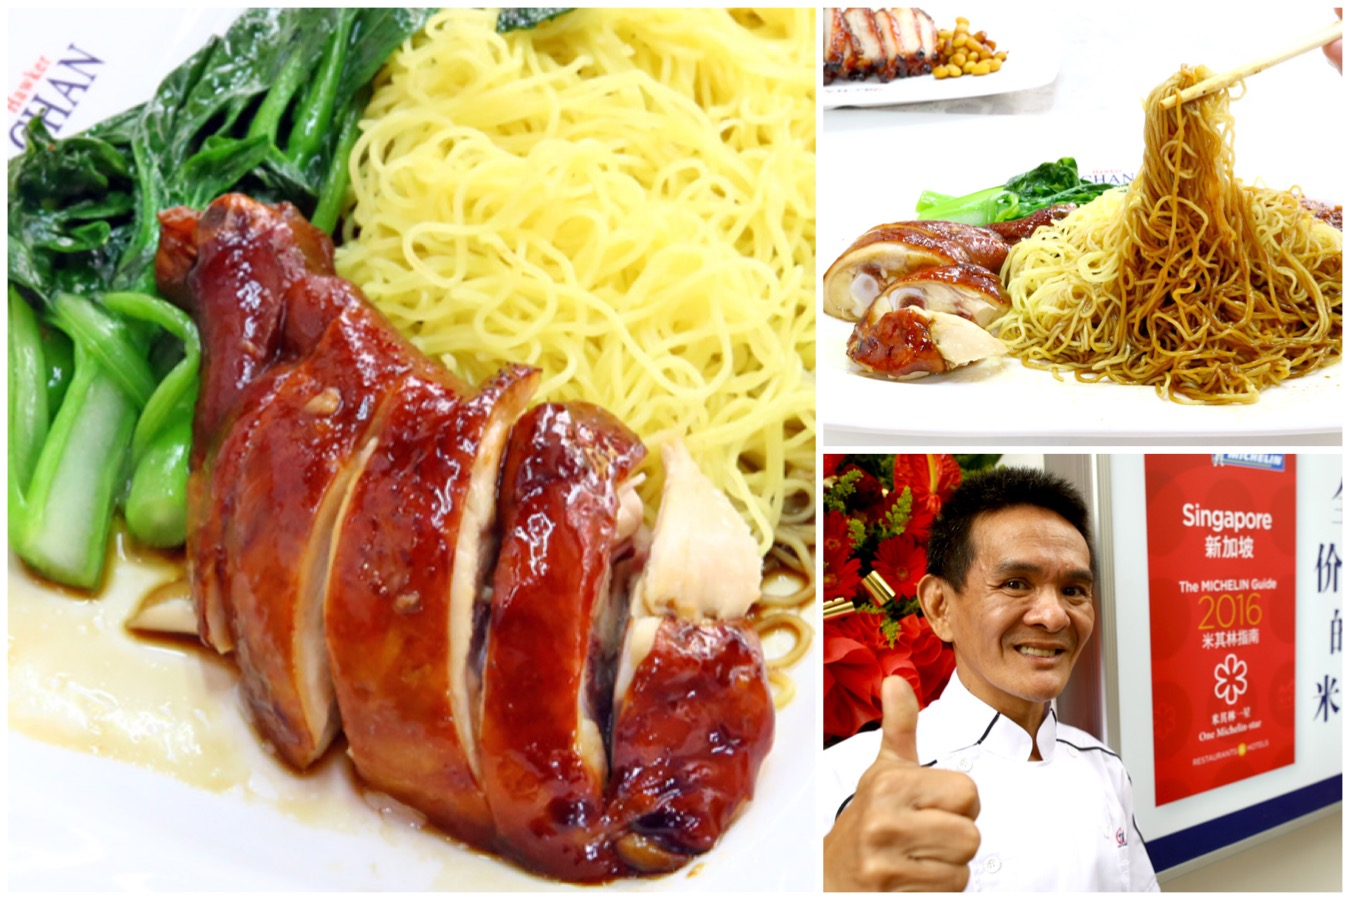 Liao Fan Hong Kong Soya Sauce Chicken Rice & Noodle - Hawker Chan's Eatery At Smith Street, With Michelin Bib Gourmand